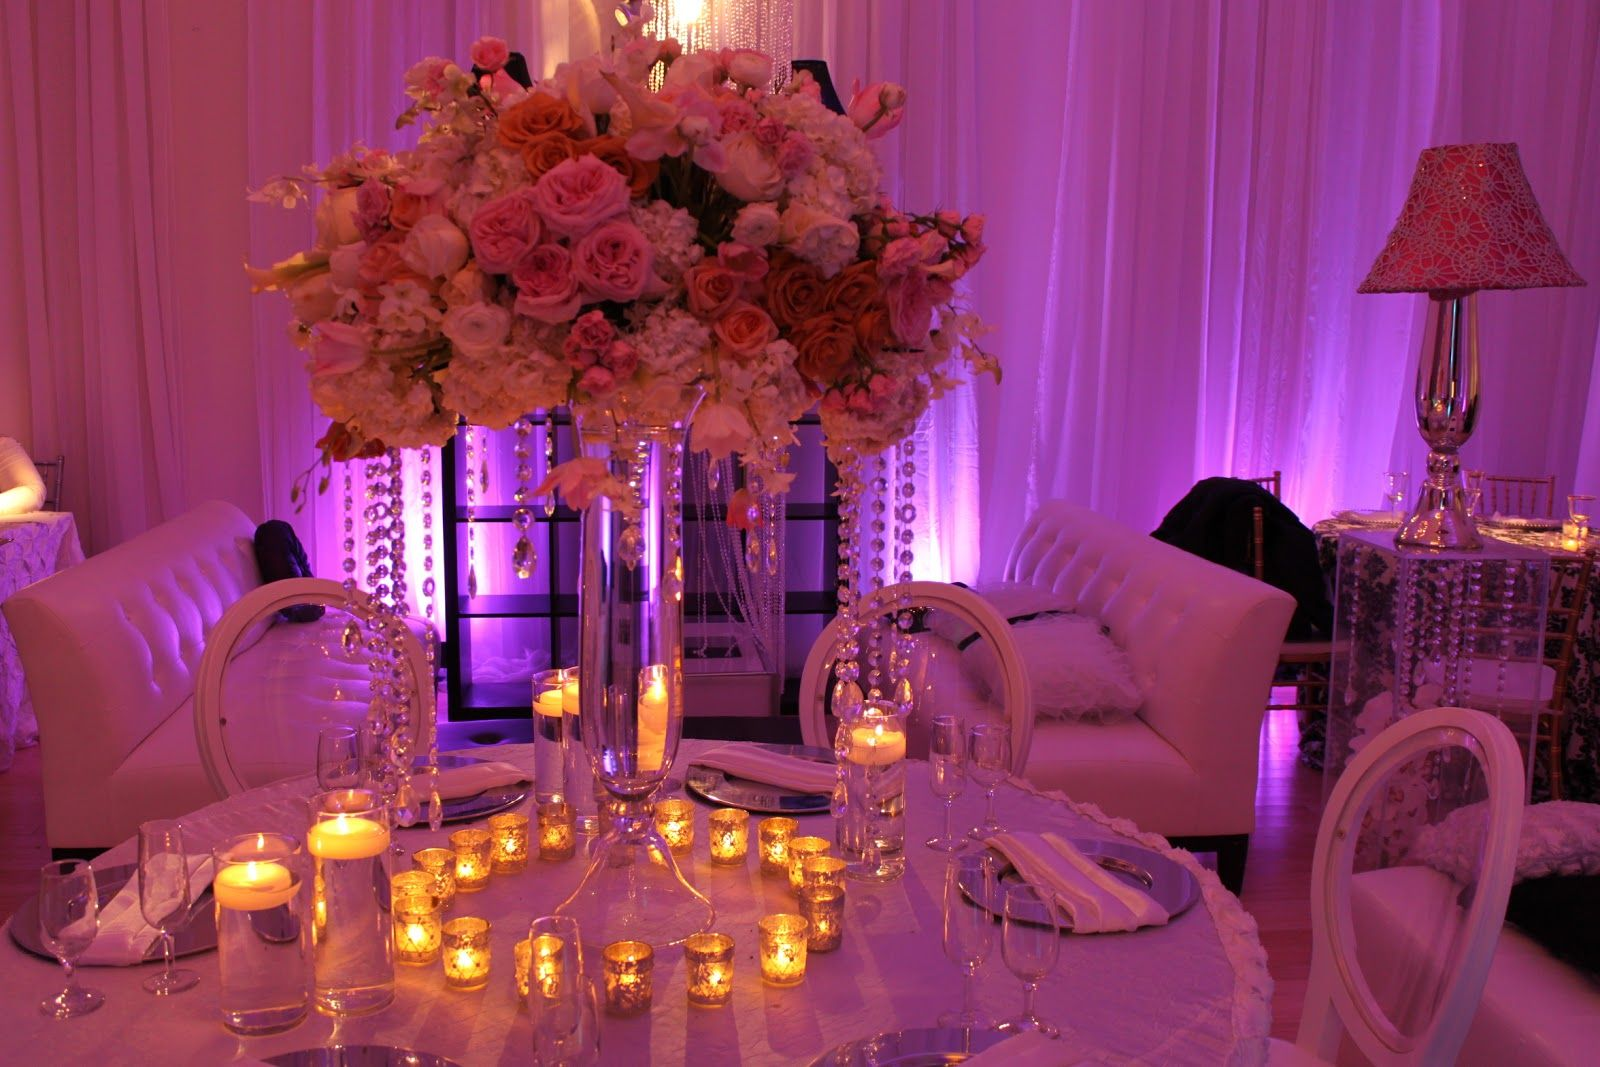 Wedding decorations red  Purple wedding table decor  Centerpieces Wedding centerpieces and